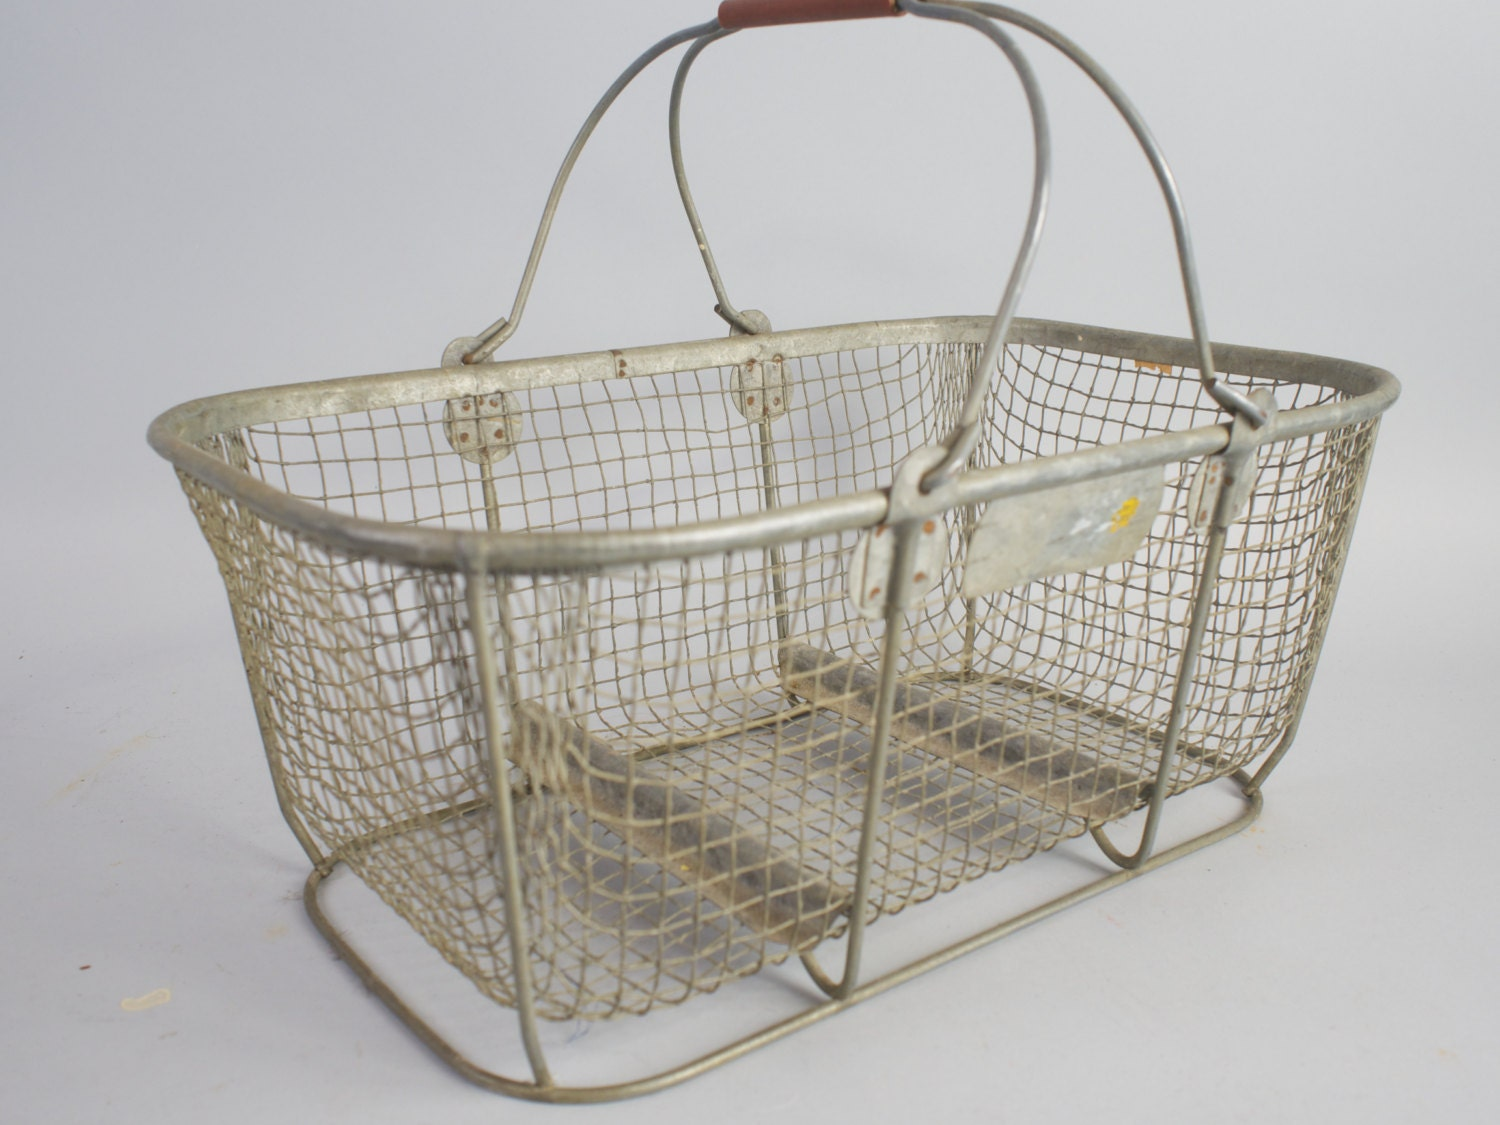 You searched for: wire basket! Etsy is the home to thousands of handmade, vintage, and one-of-a-kind products and gifts related to your search. Wire Basket, Black with Wood Handles, Large, Sturdy, Farmhouse, French Country, Shabby Chic Black wire basket metal basket mail catcher bathroom decor washcloth storage.